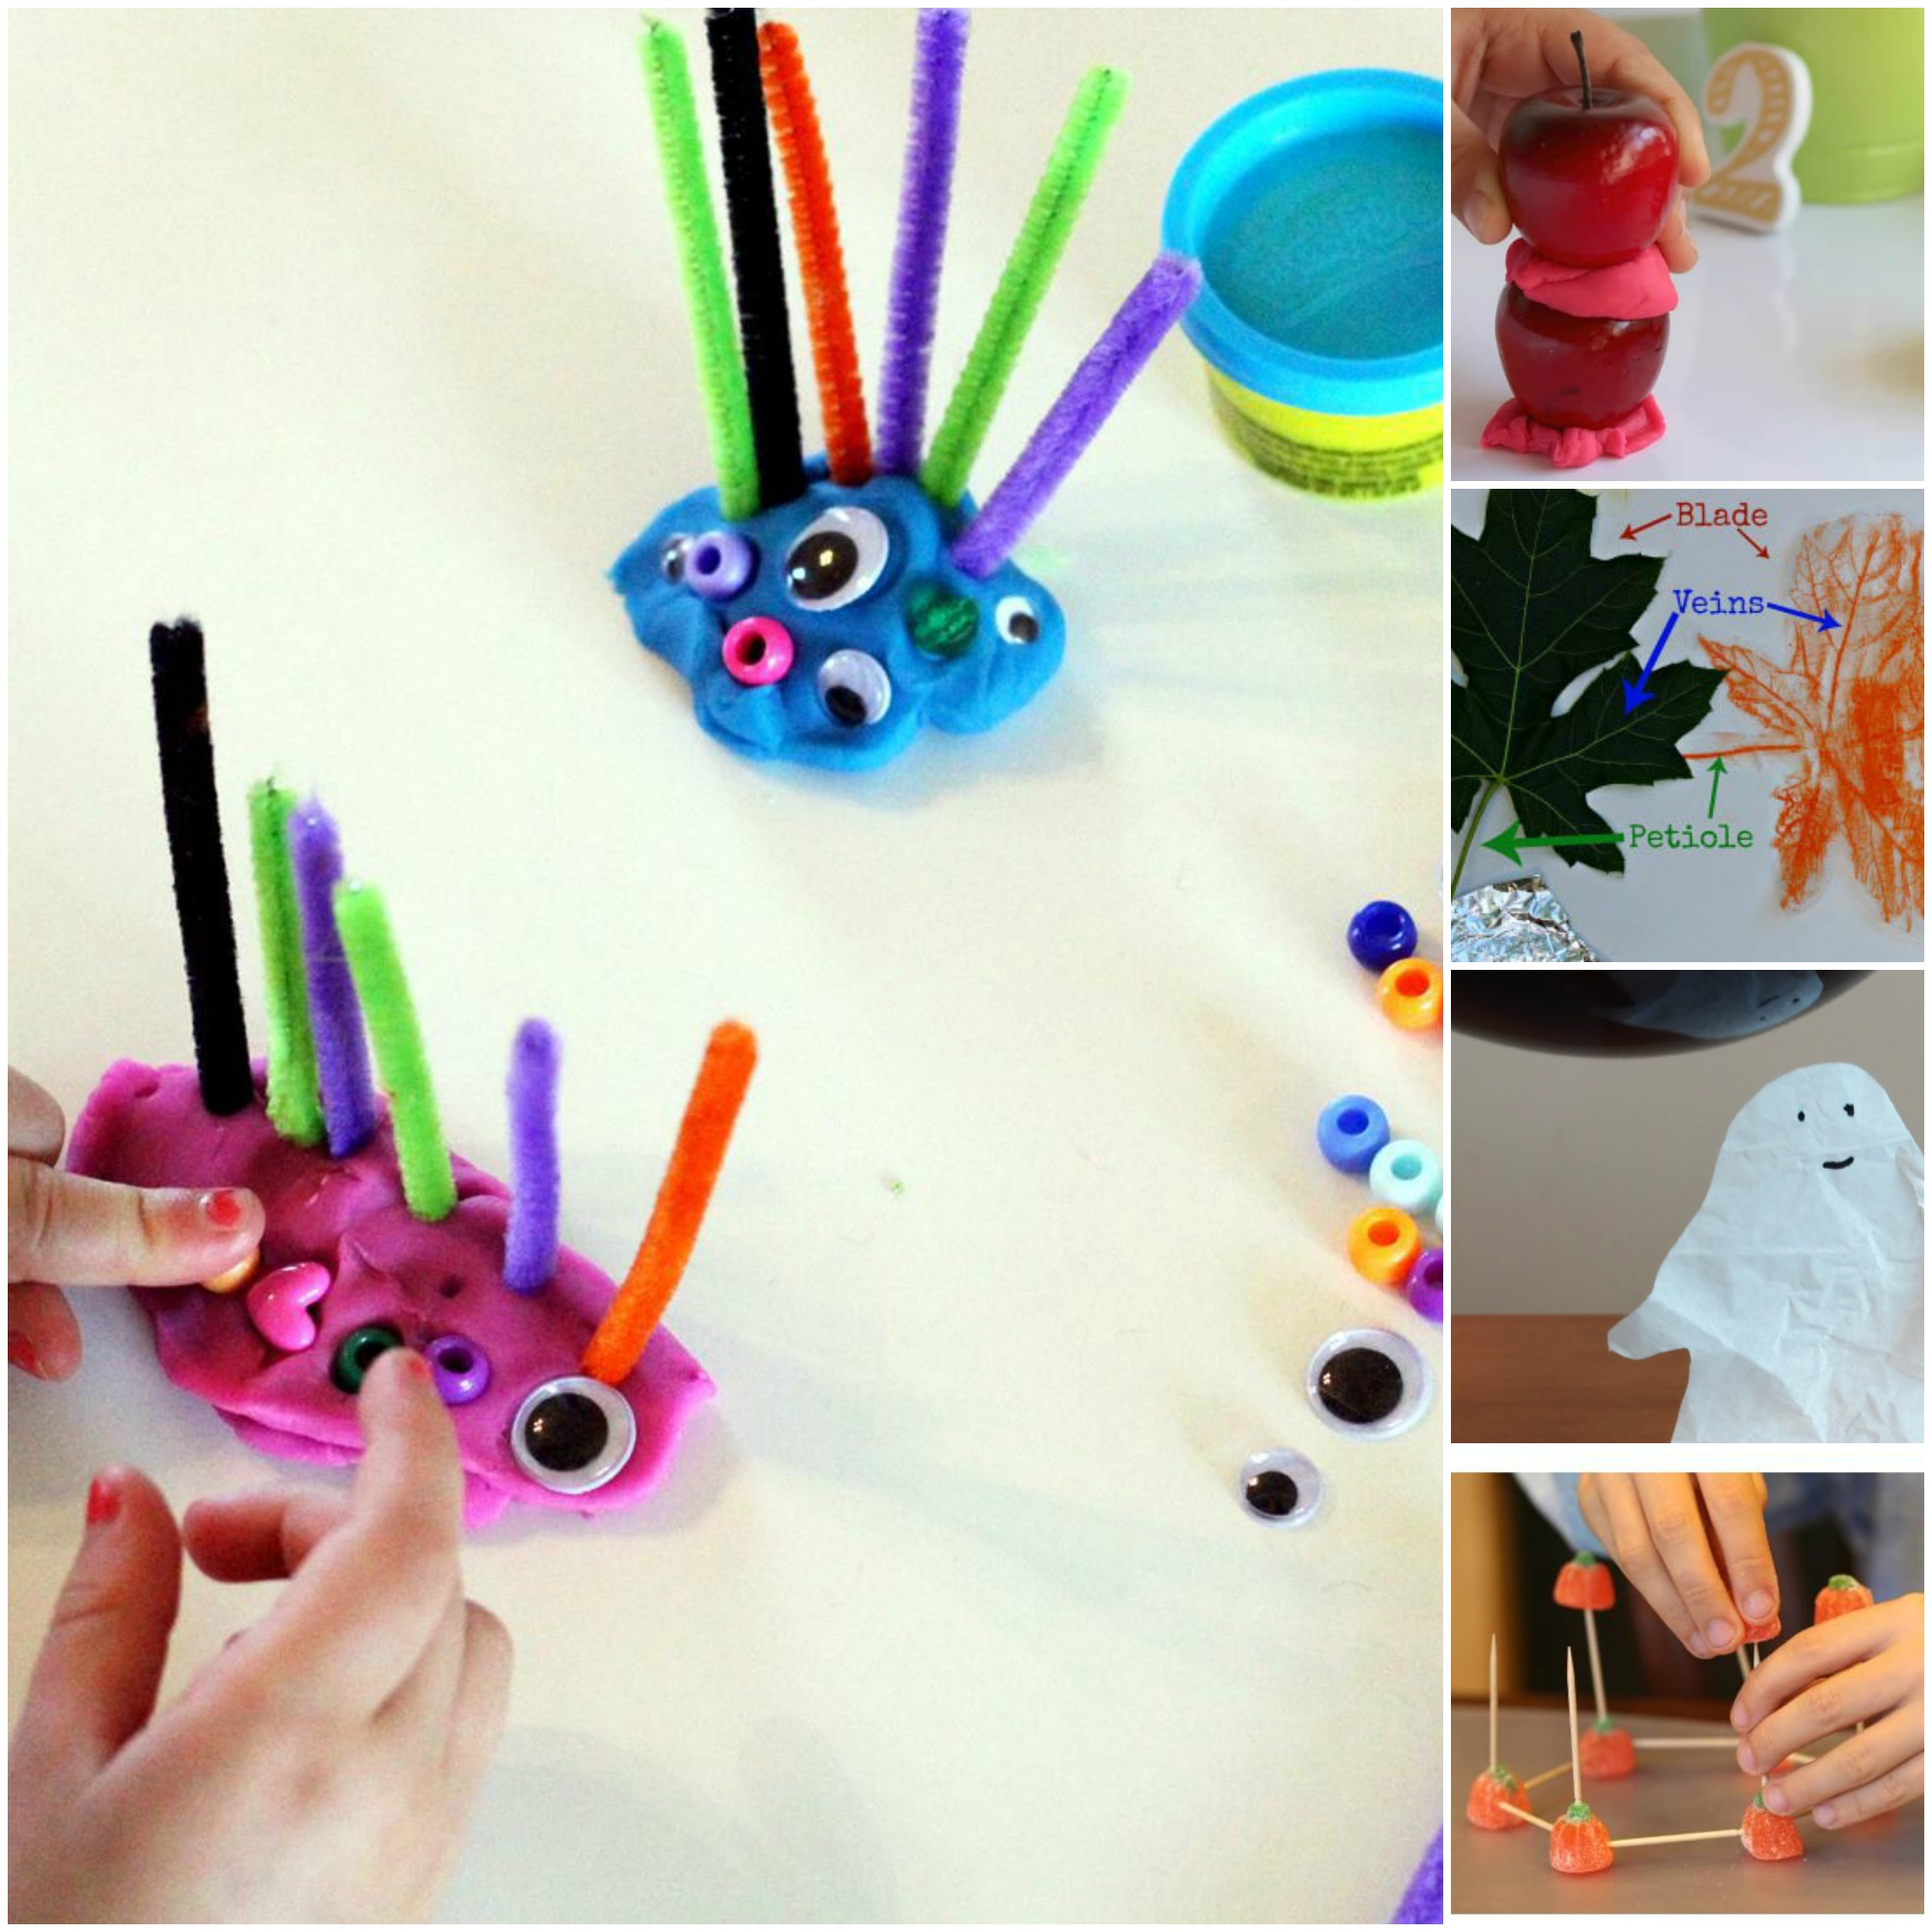 Cooler months are the perfect time to try out new STEM activities! Kids love getting their hands messy and working their little minds as they create and build with this set of fall STEM learning activities.